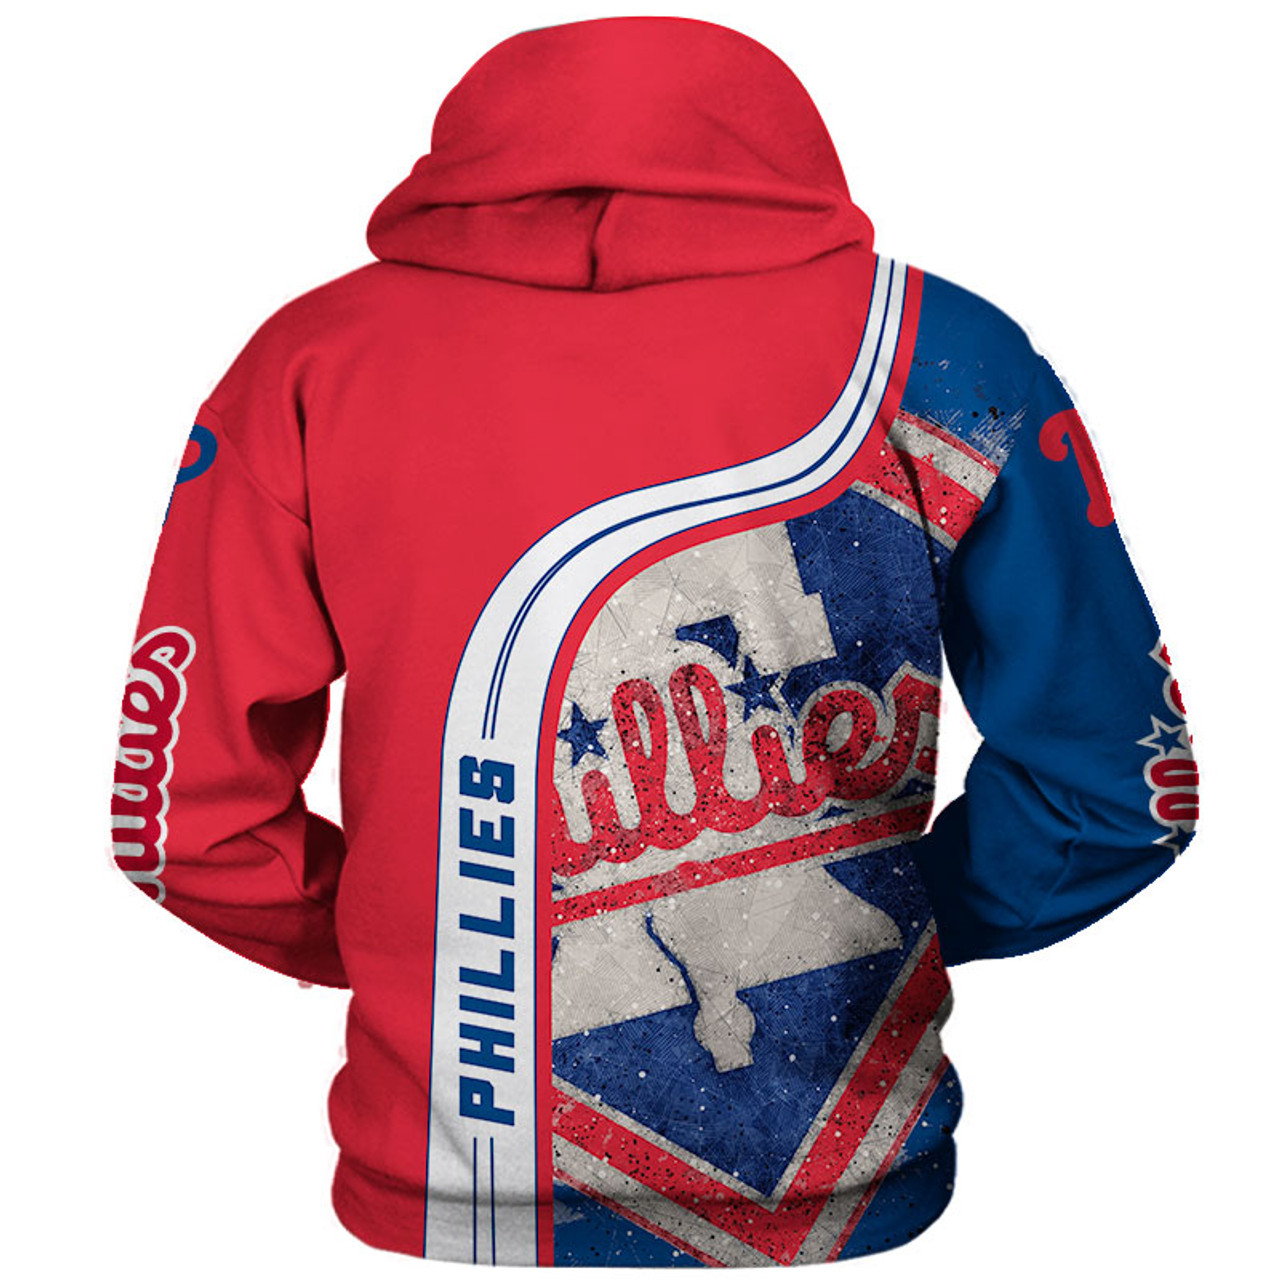 **(OFFICIAL-M.L.B.PHILADELPHIA-PHILLIES-TEAM-PATRIOTIC-ZIPPERED-HOODIES/NICE-CUSTOM-DETAILED-3D-GRAPHIC-PRINTED/PREMIUM-ALL-OVER-DOUBLE-SIDED-DESIGN/OFFICIAL-PHILLIES-TEAM-COLORS & CLASSIC-PHILLIES-3D-GRAPHIC-LOGOS/PREMIUM-M.L.B.ZIPPERED-HOODIES)**